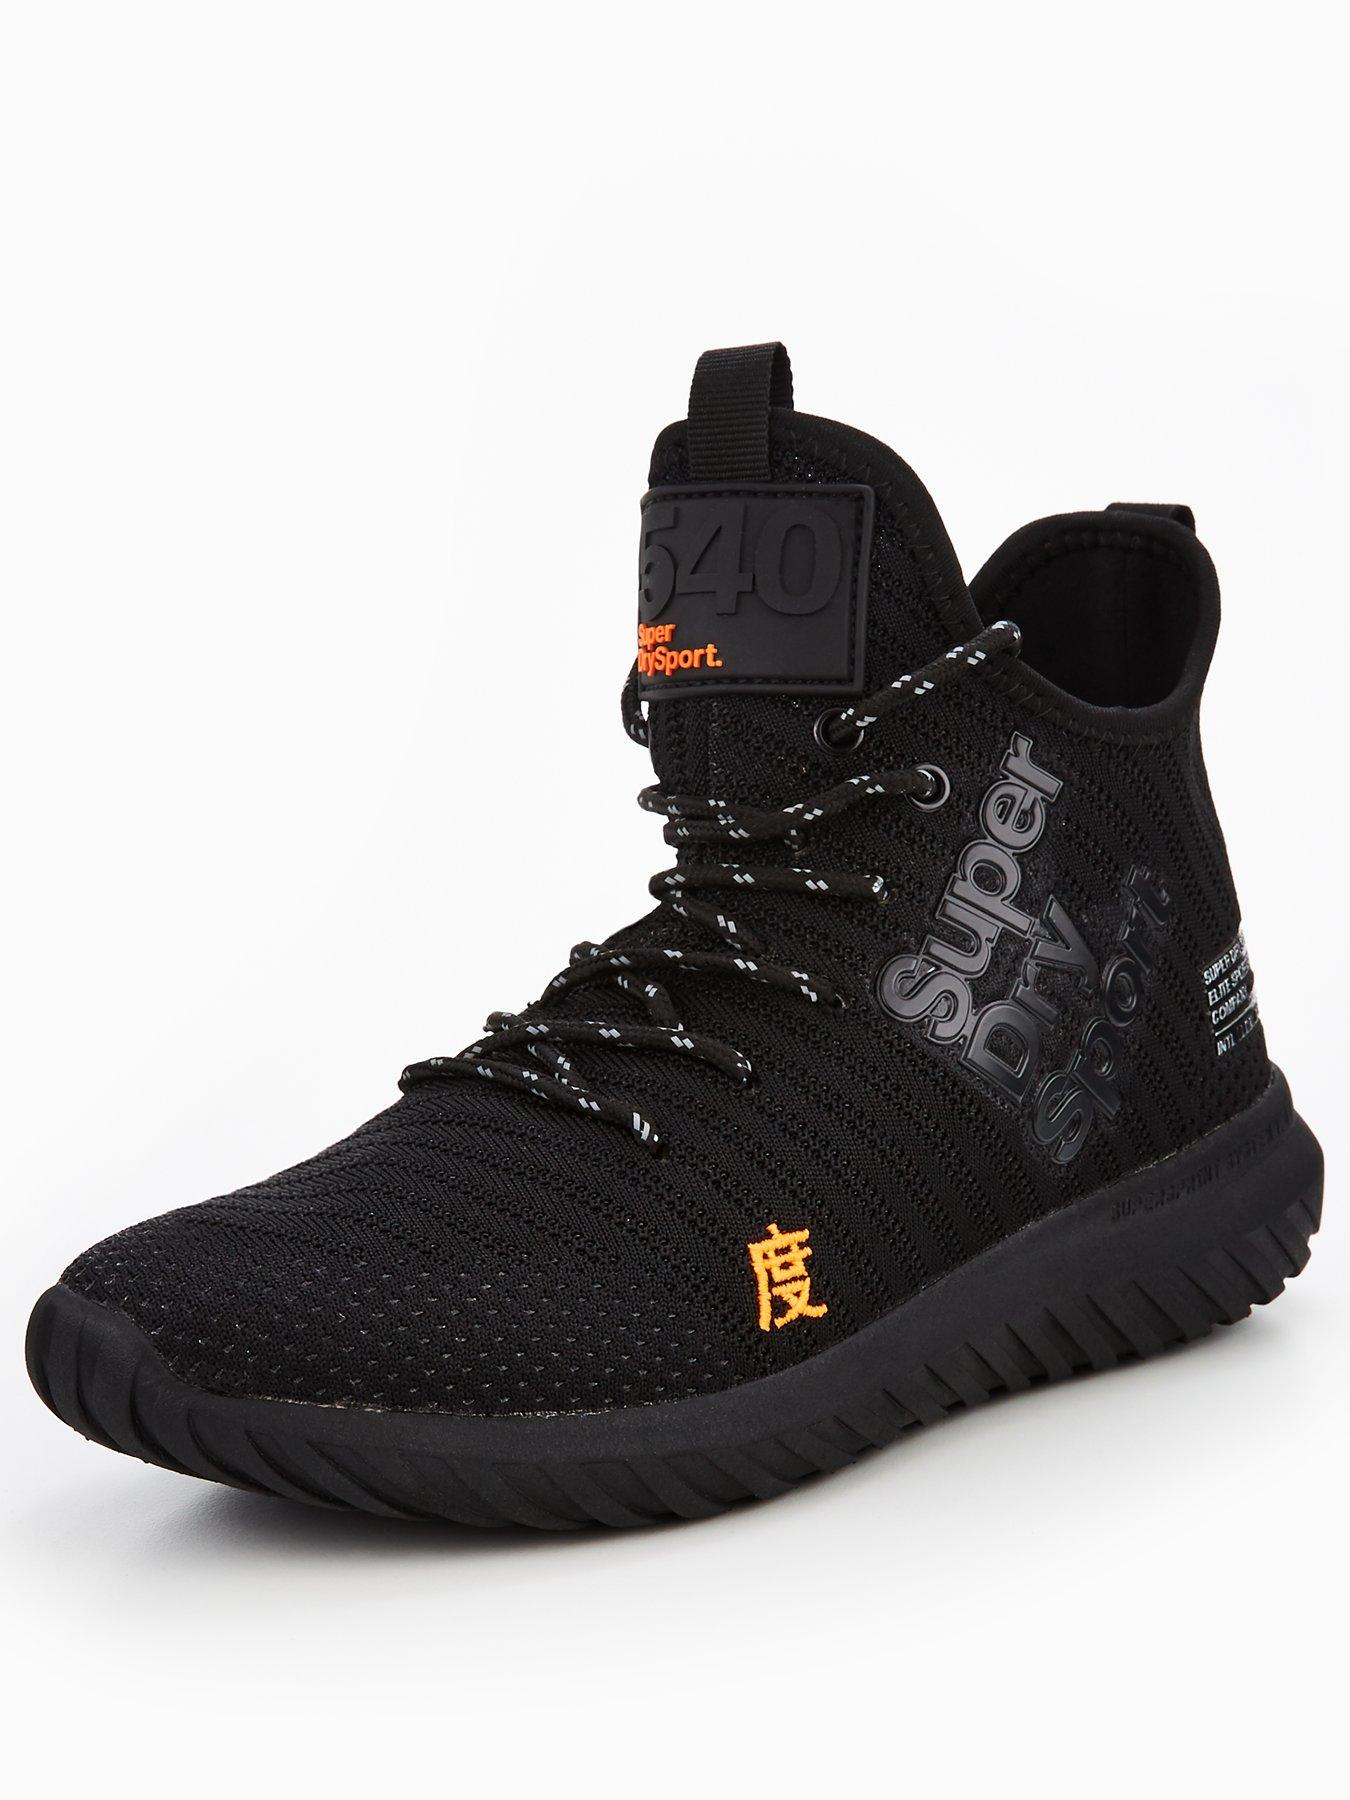 Superdry Nebulus Hybrid High 1600189985 Men's Shoes Superdry Trainers